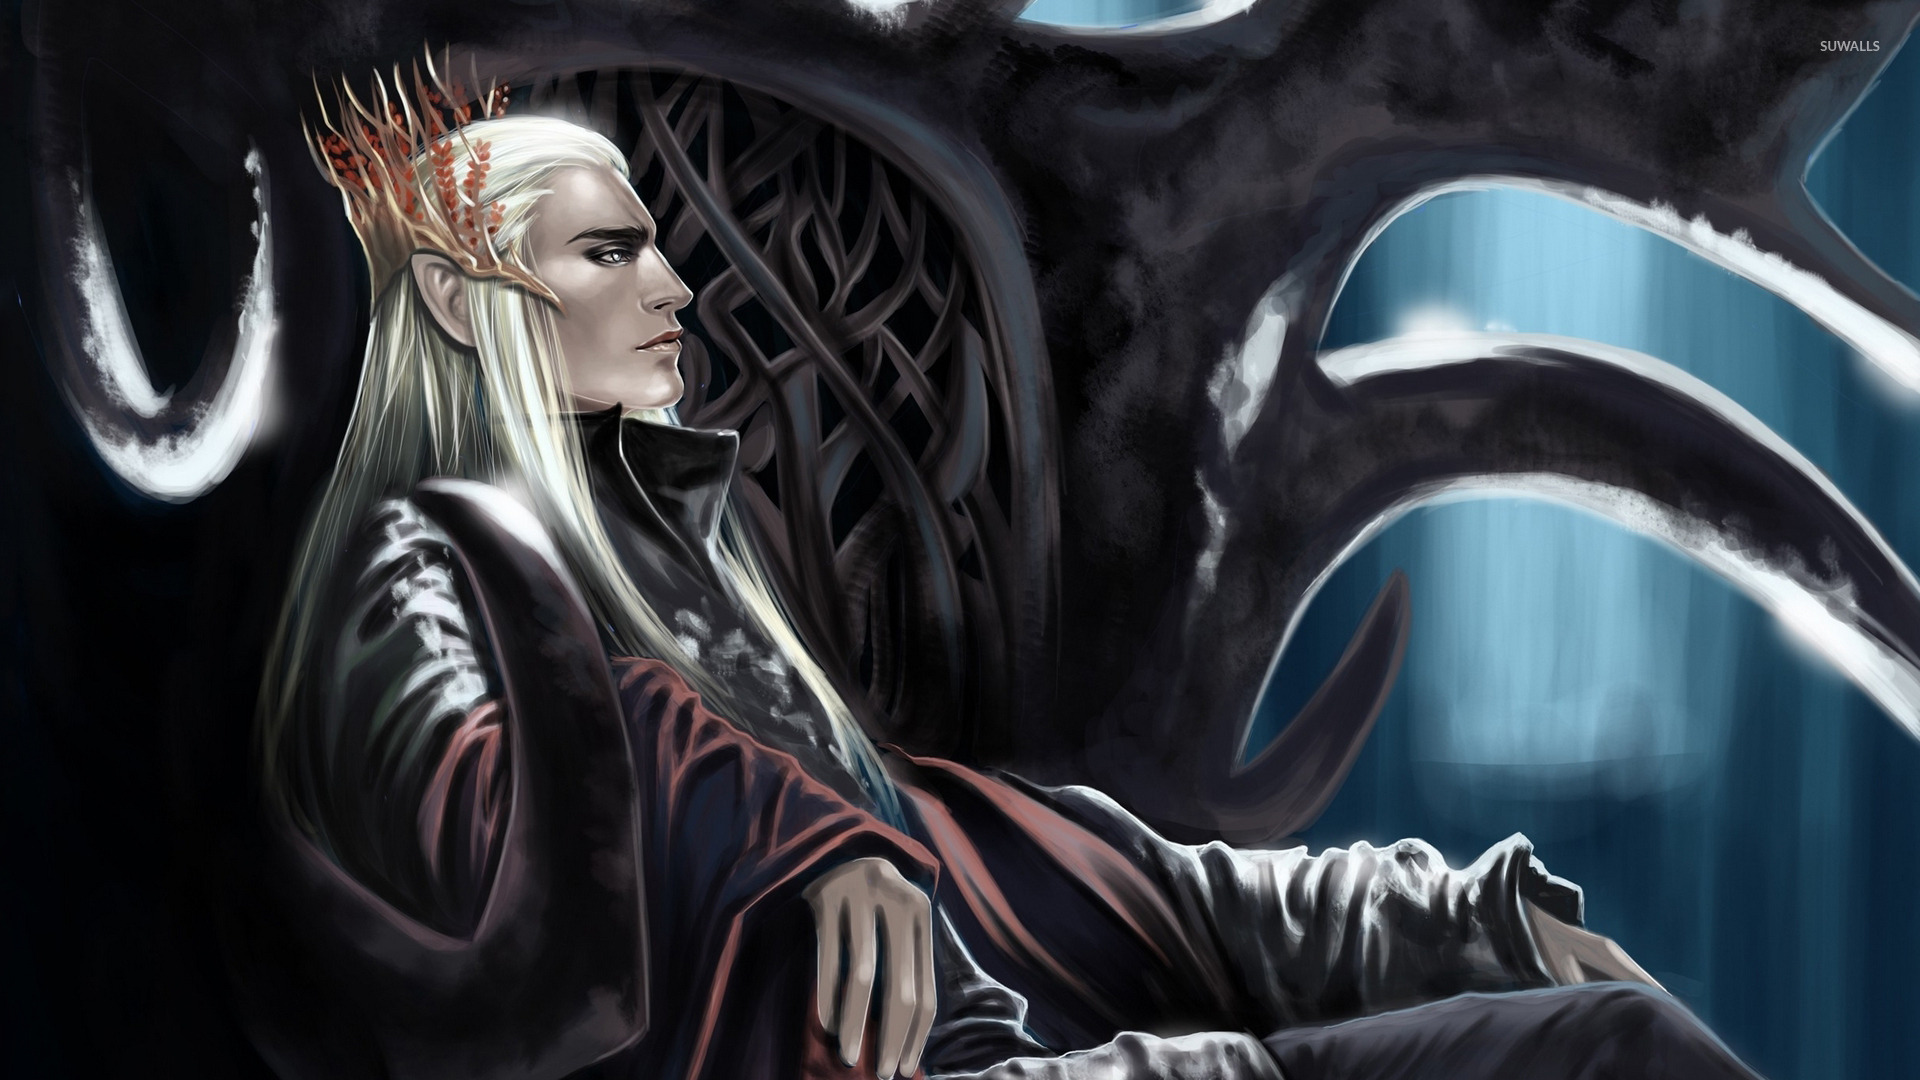 King Of Mirkwood Lord Of The Rings Wallpaper Fantasy